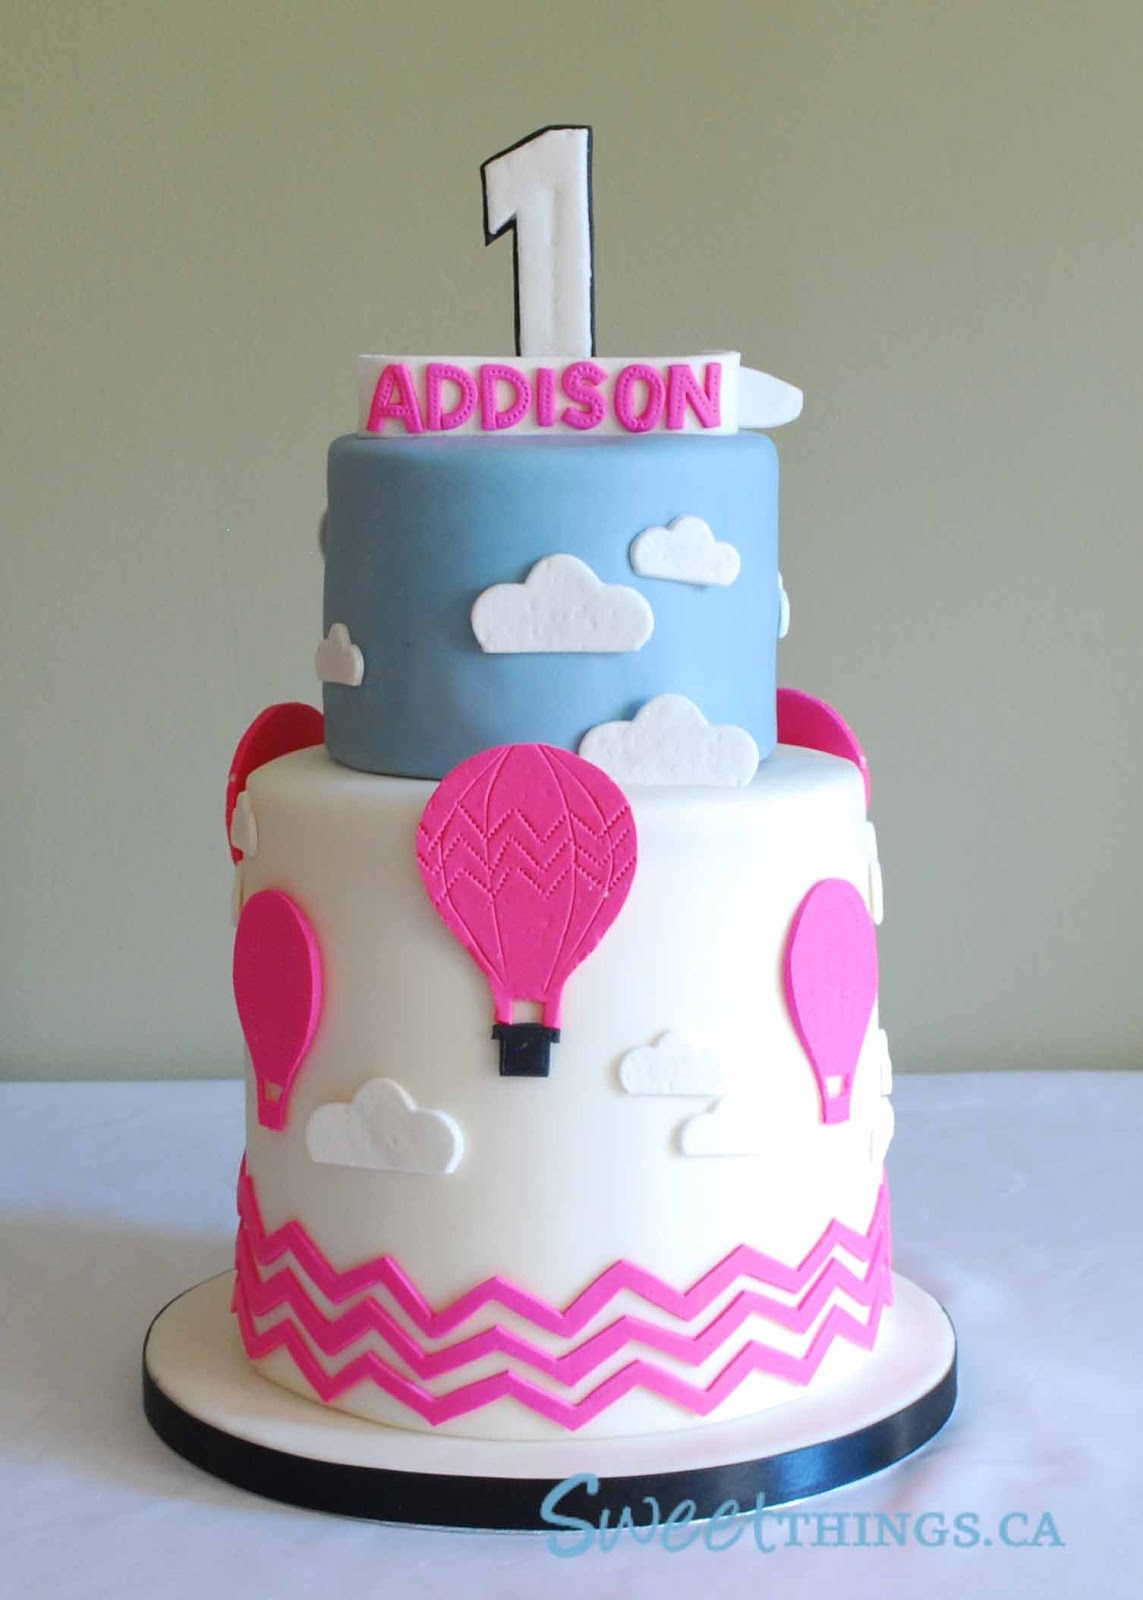 Cake Design Ballarat : SweetThings: Hot Air Balloon Cake